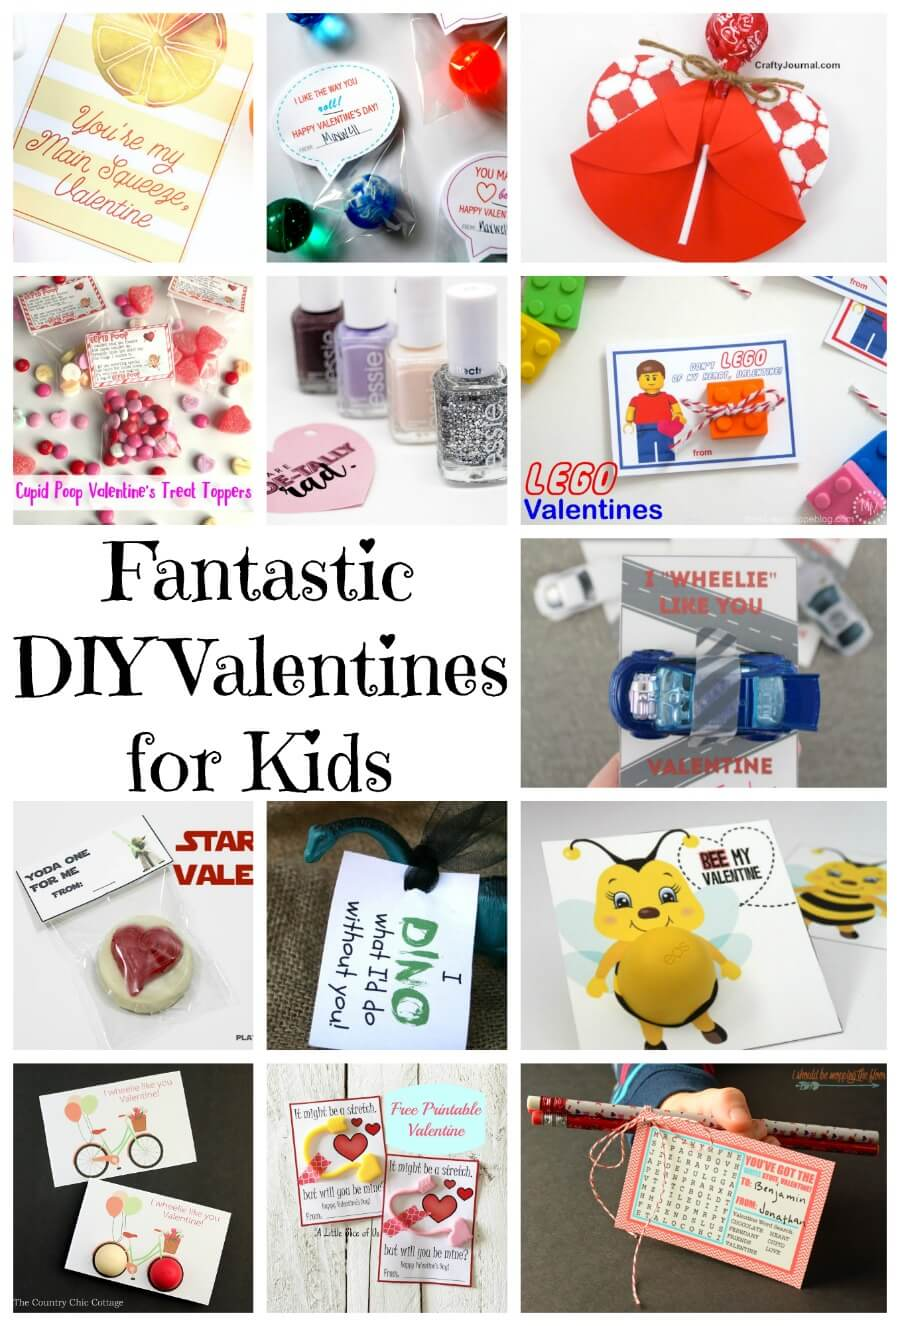 Fantastic DIY Valentines for kids from Nap-Time Creations